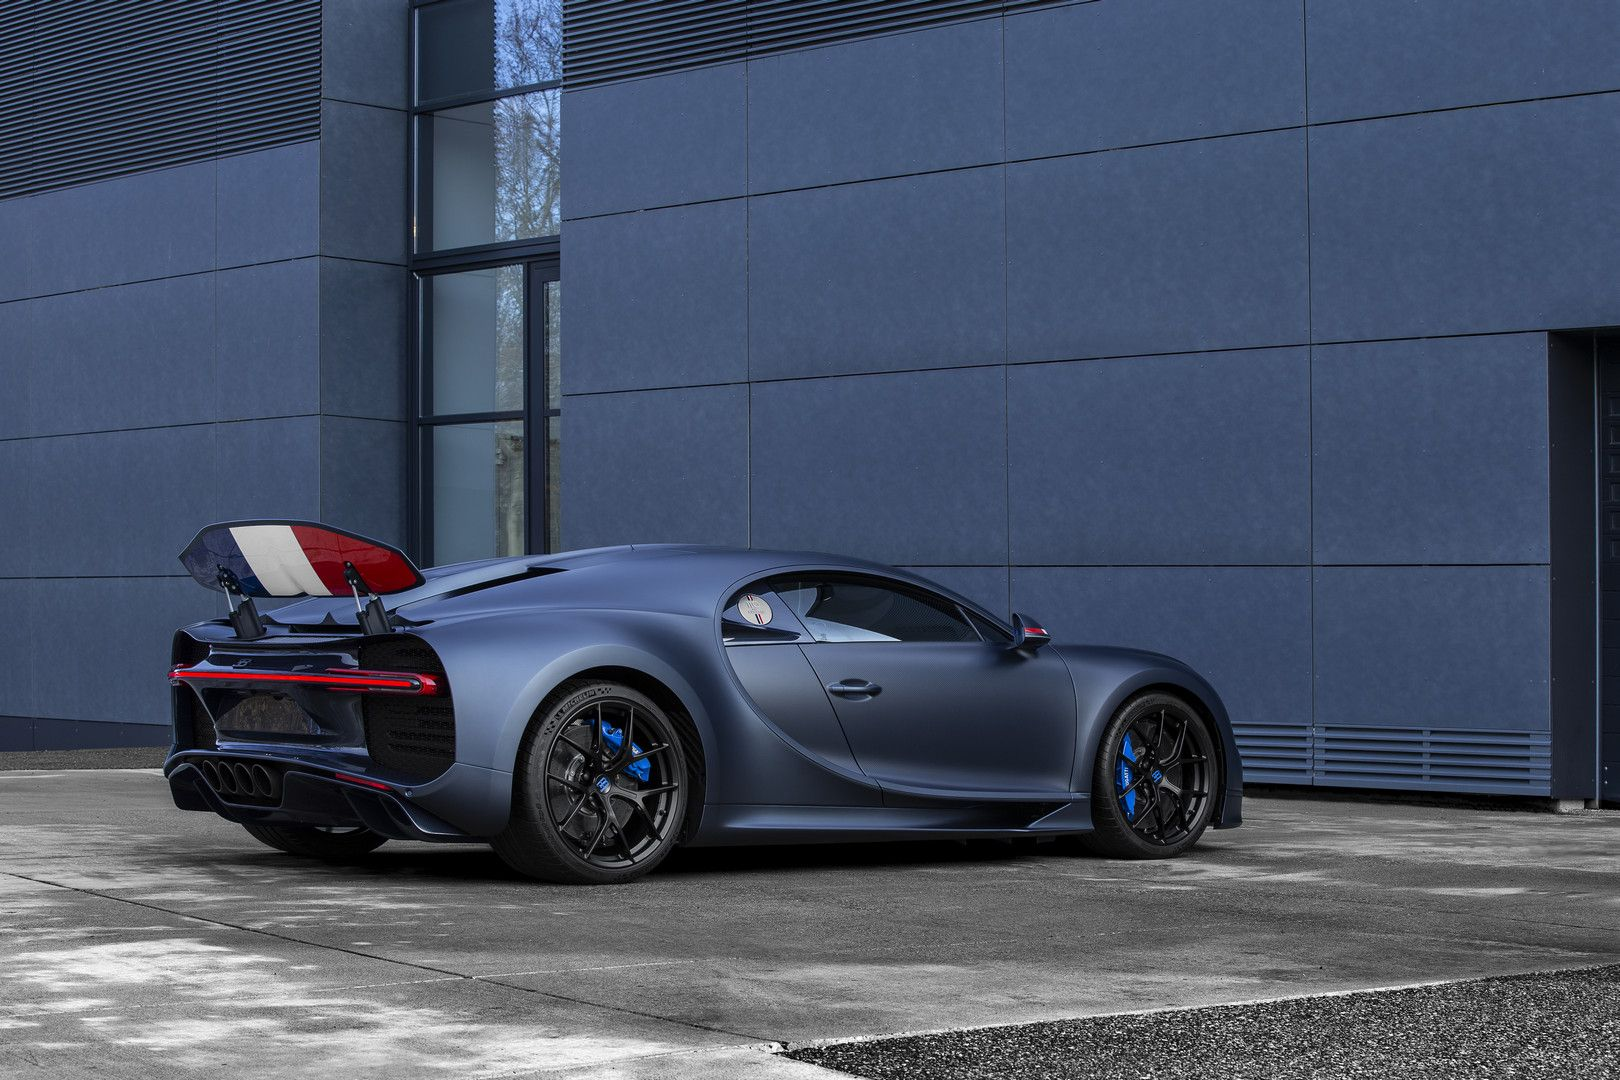 Bugatti Chiron Sport 110 Ans For Sale 1 Of 20 Worldwide Supercars For Sale In 2020 Bugatti Chiron Bugatti Sports Car